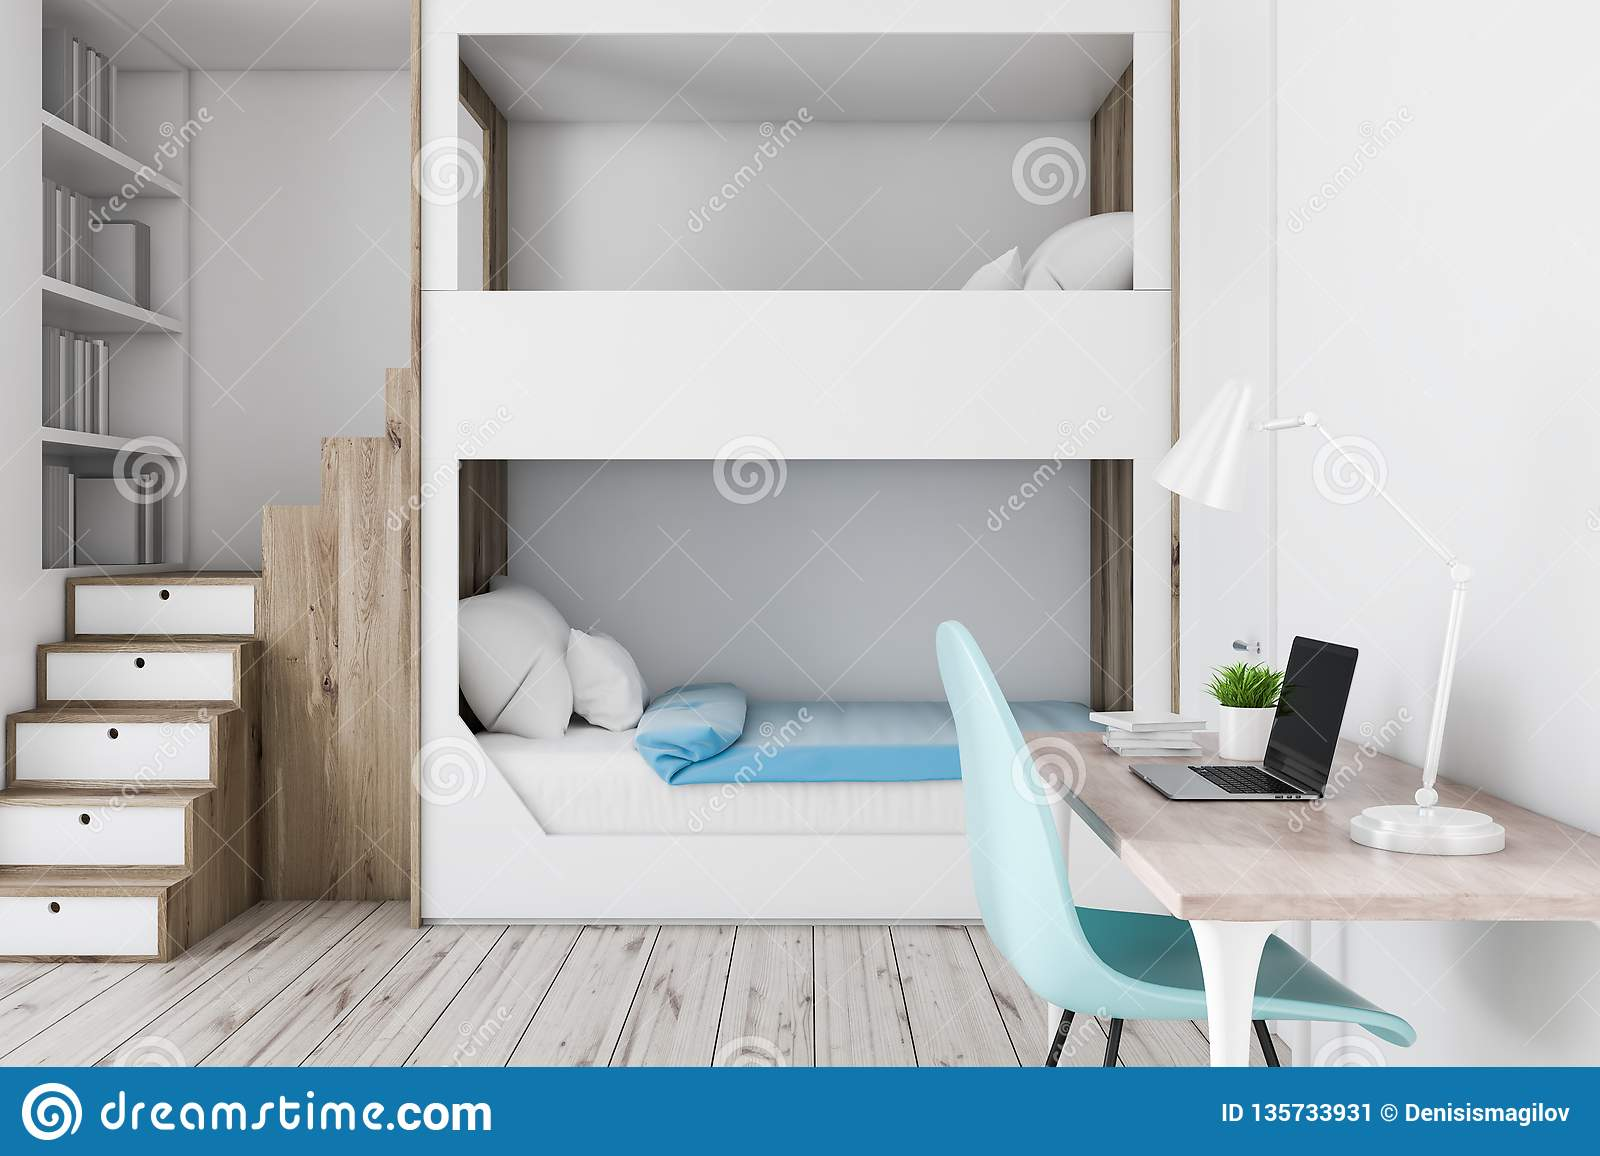 Picture of: Bunk Bed And Computer Desk Stock Illustration Illustration Of Floor 135733931